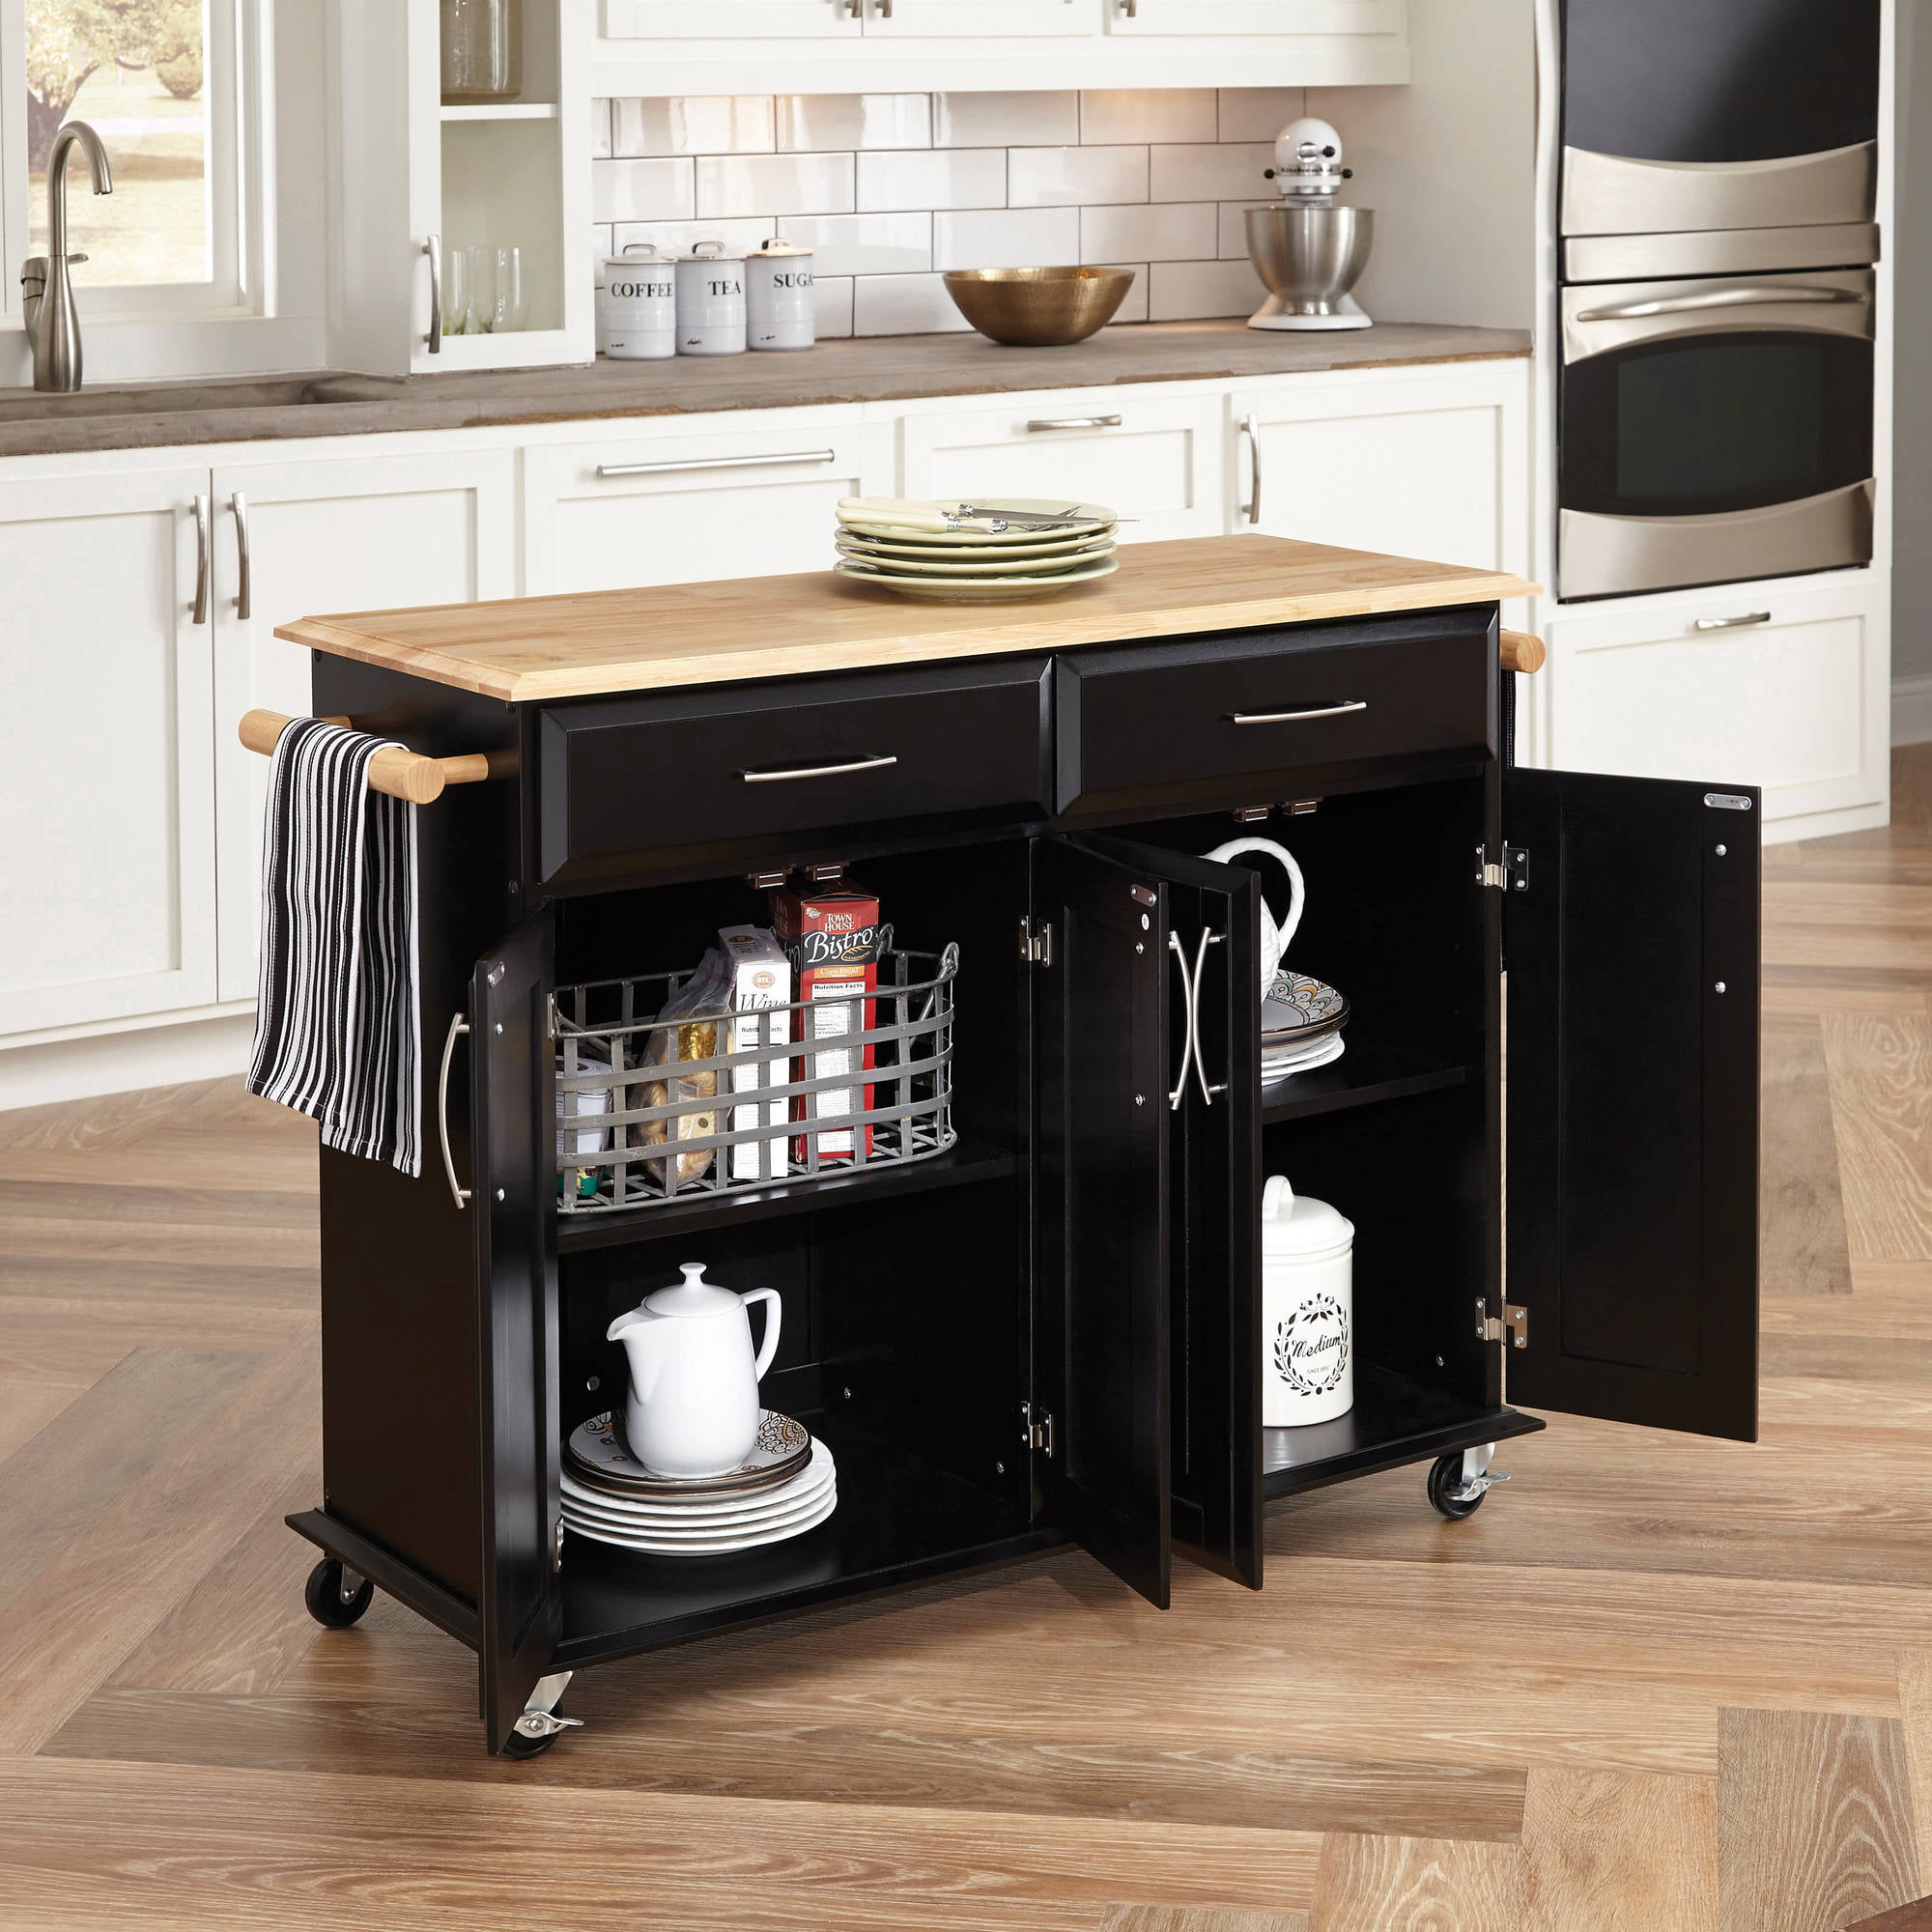 Home Styles Dolly Madison Black Island Cart Walmartcom - Kitchen island cart walmart